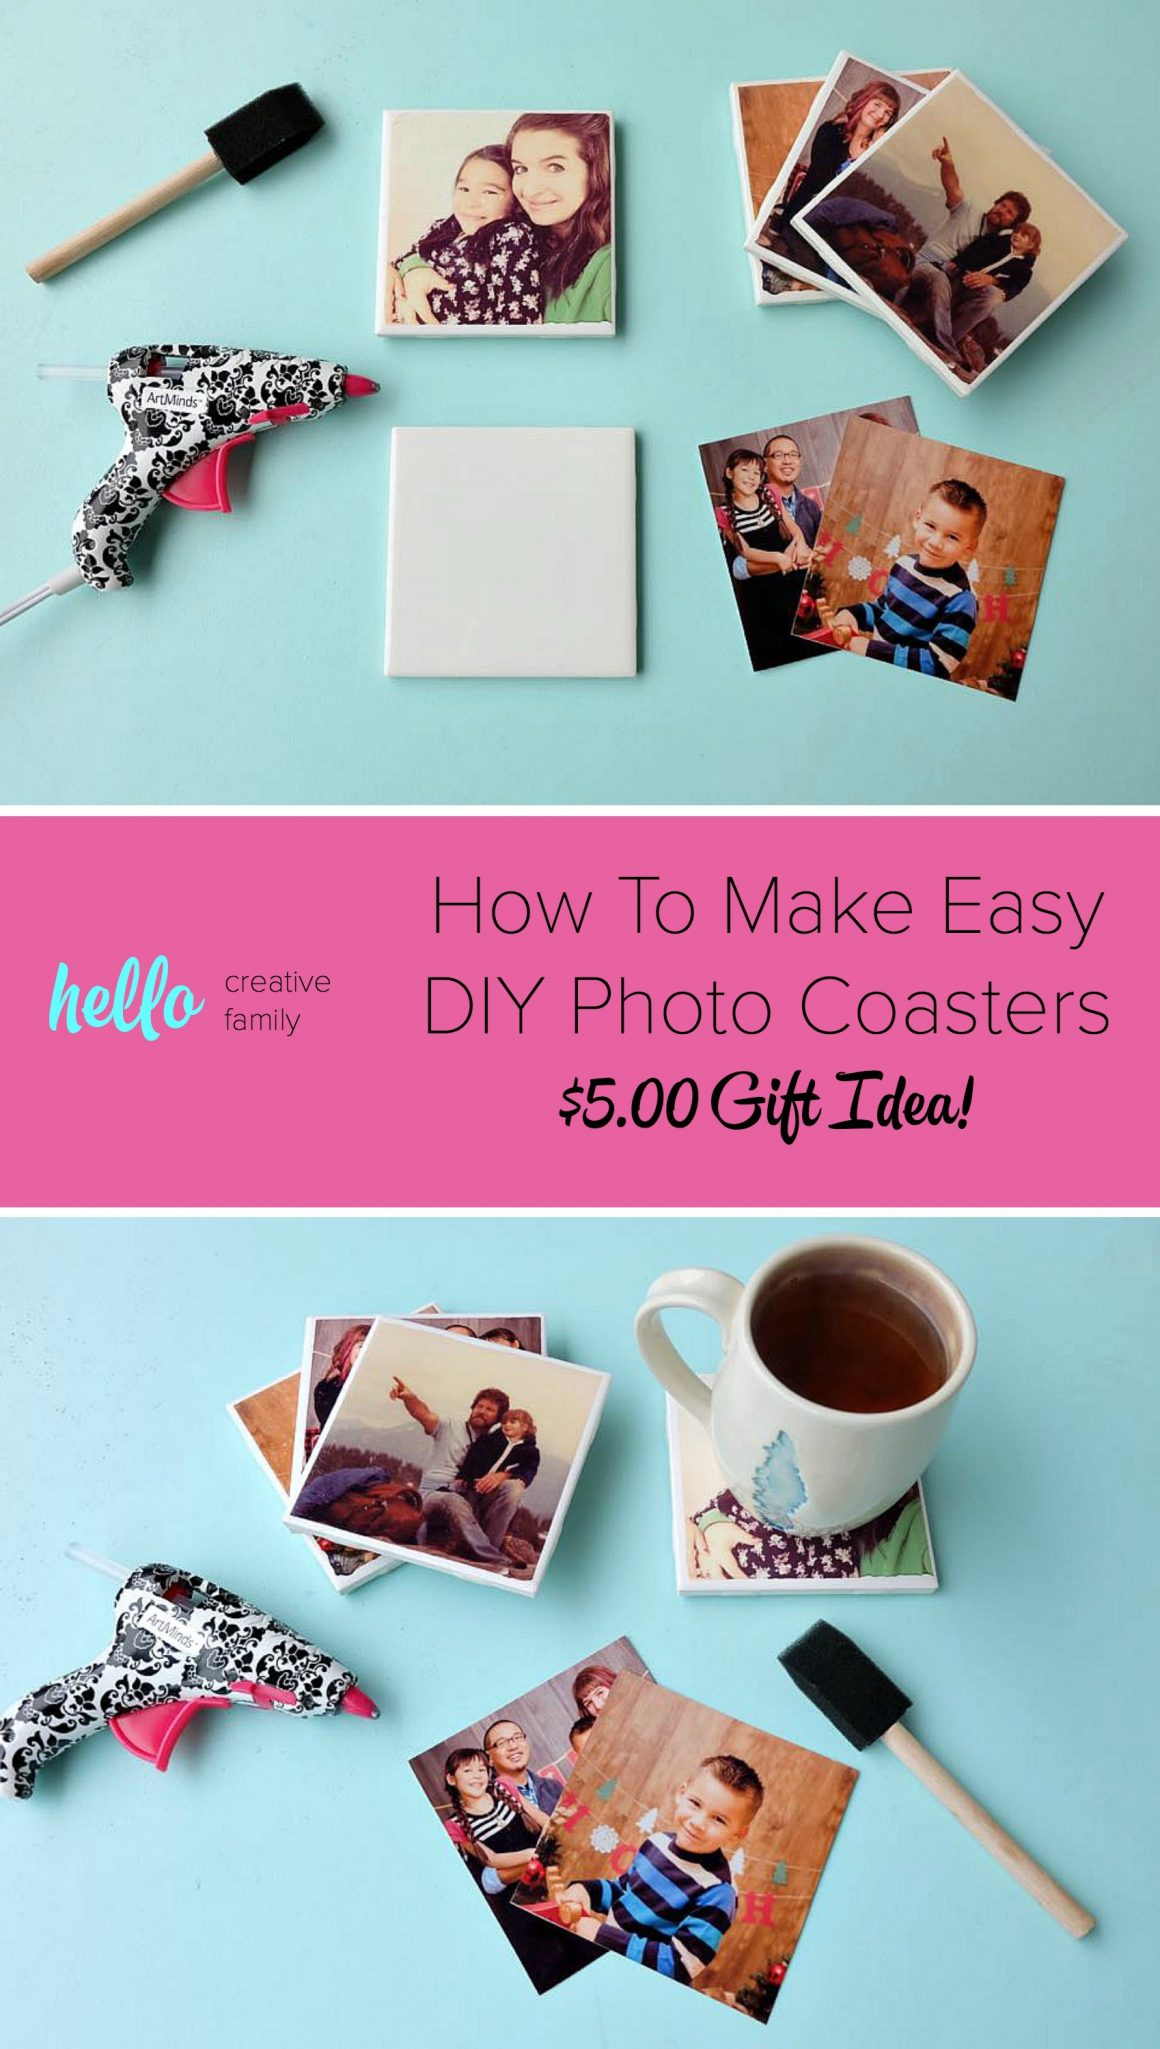 Diy emoji easter eggs with free printable hello creative family turn your favorite family photos into gorgeous diy photo coasters this project is an easy negle Choice Image